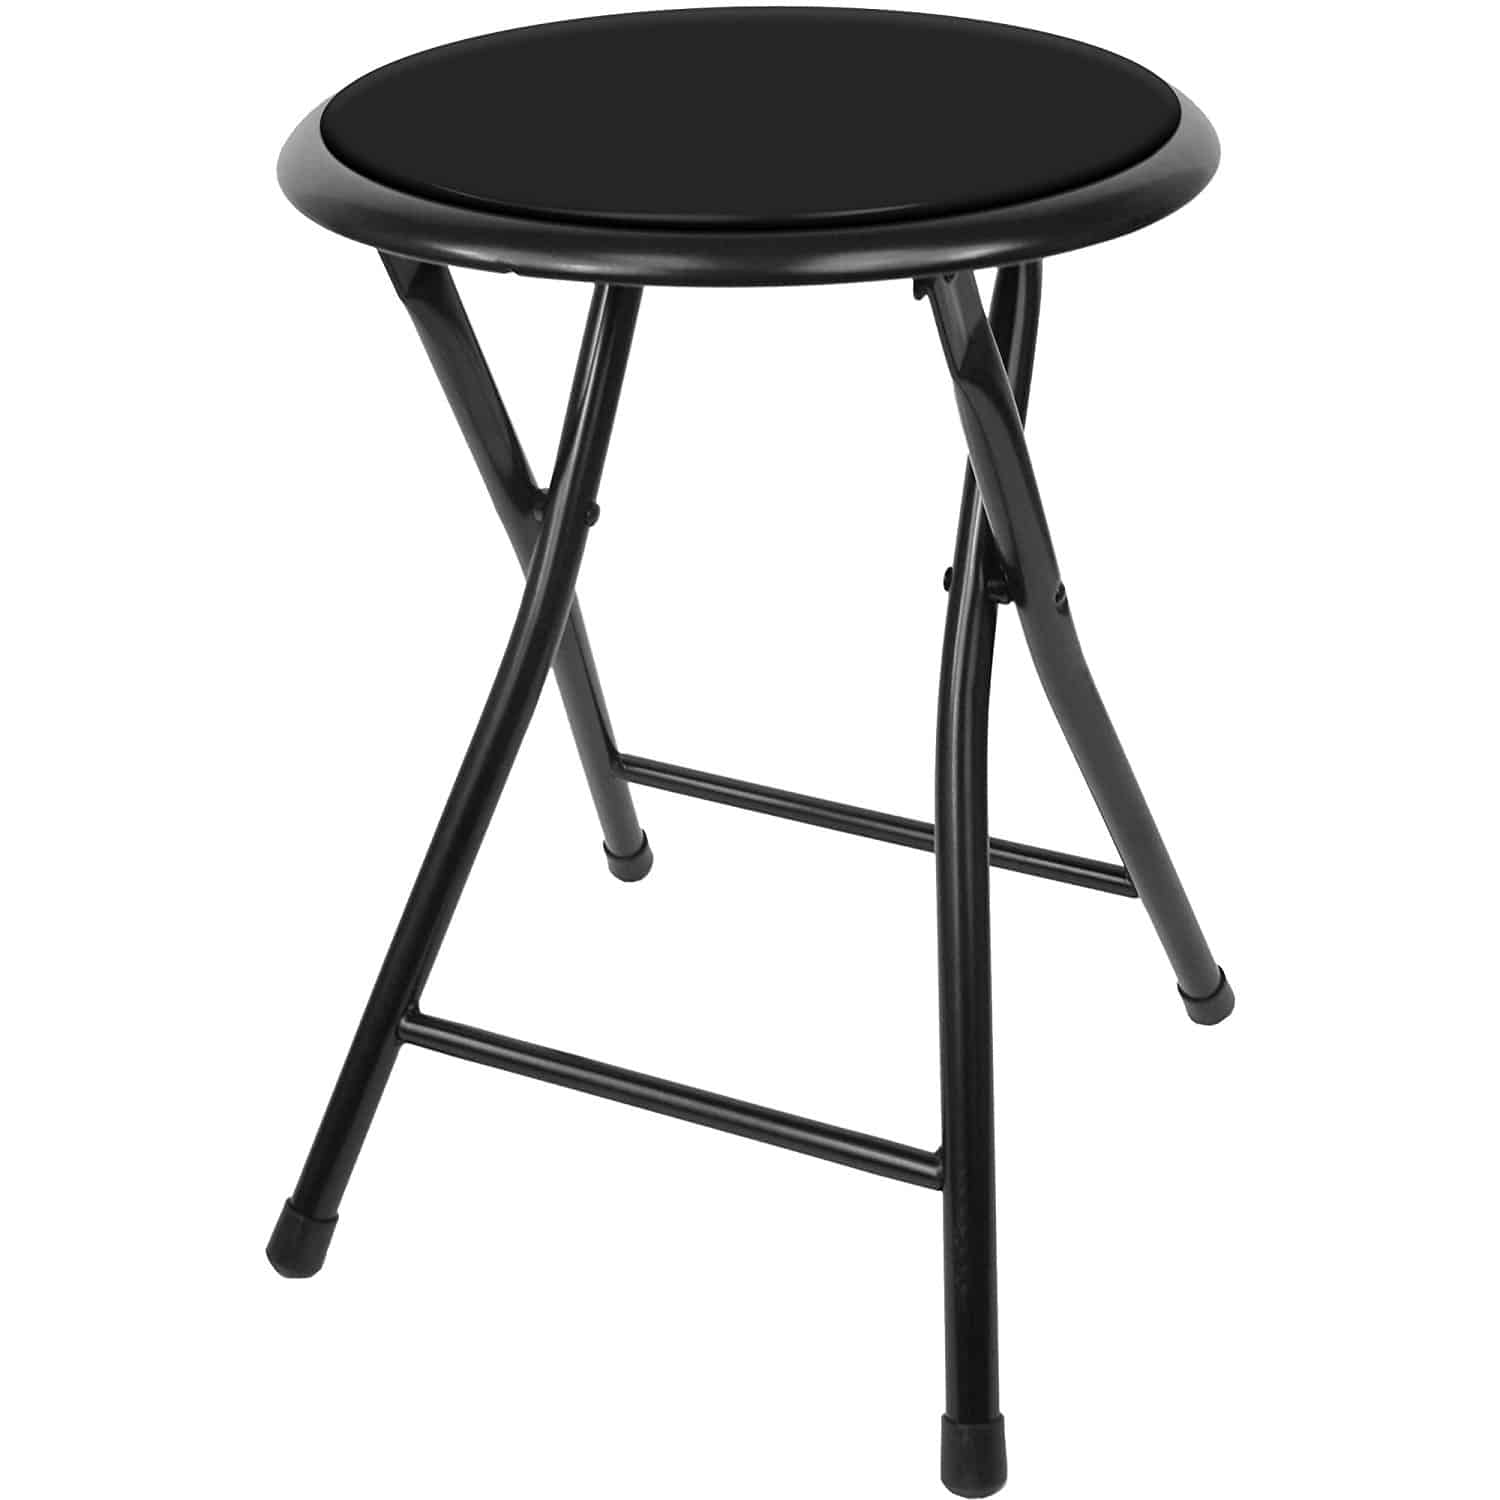 Folding stool with tough steel frame and black cushioned seat.